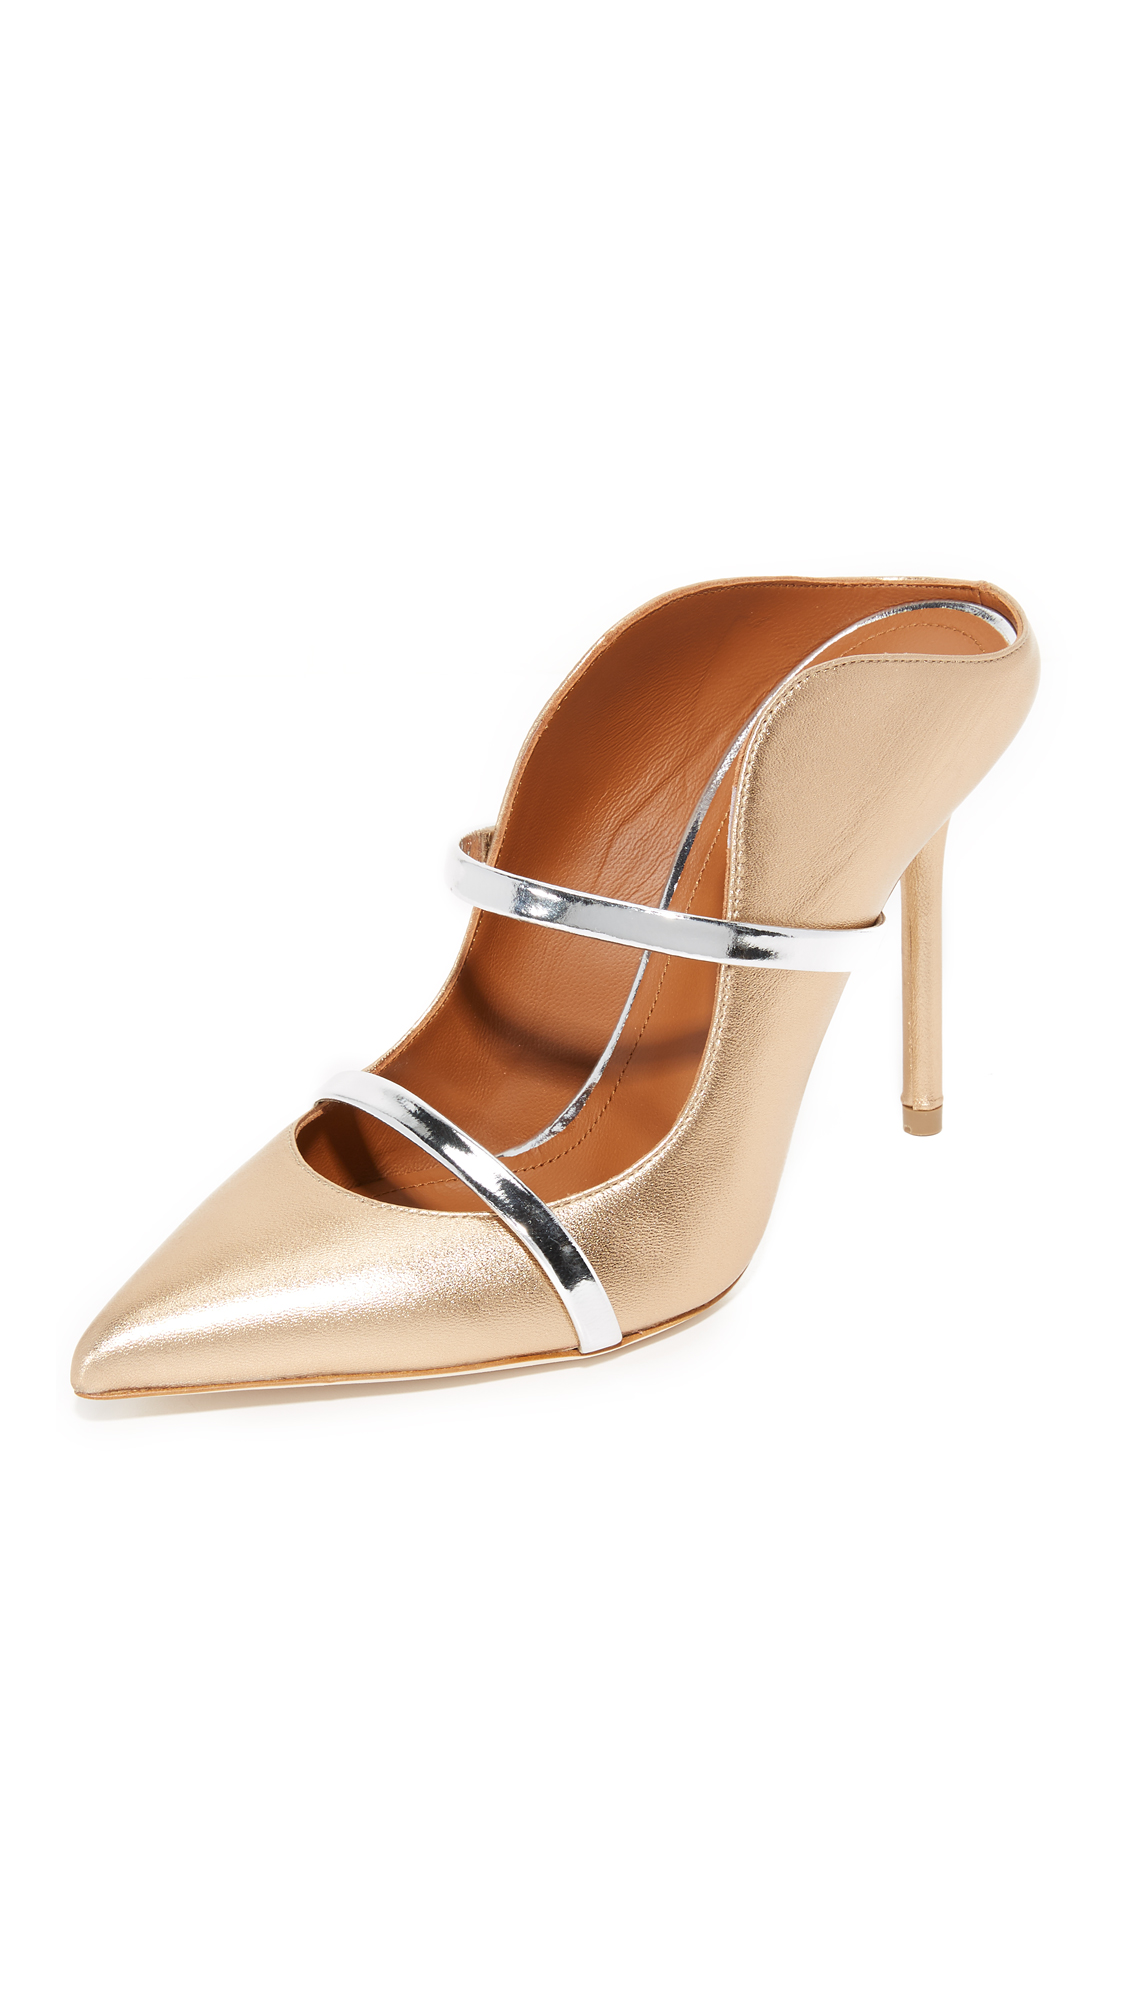 Malone Souliers Maureen Mules - Gold/Silver